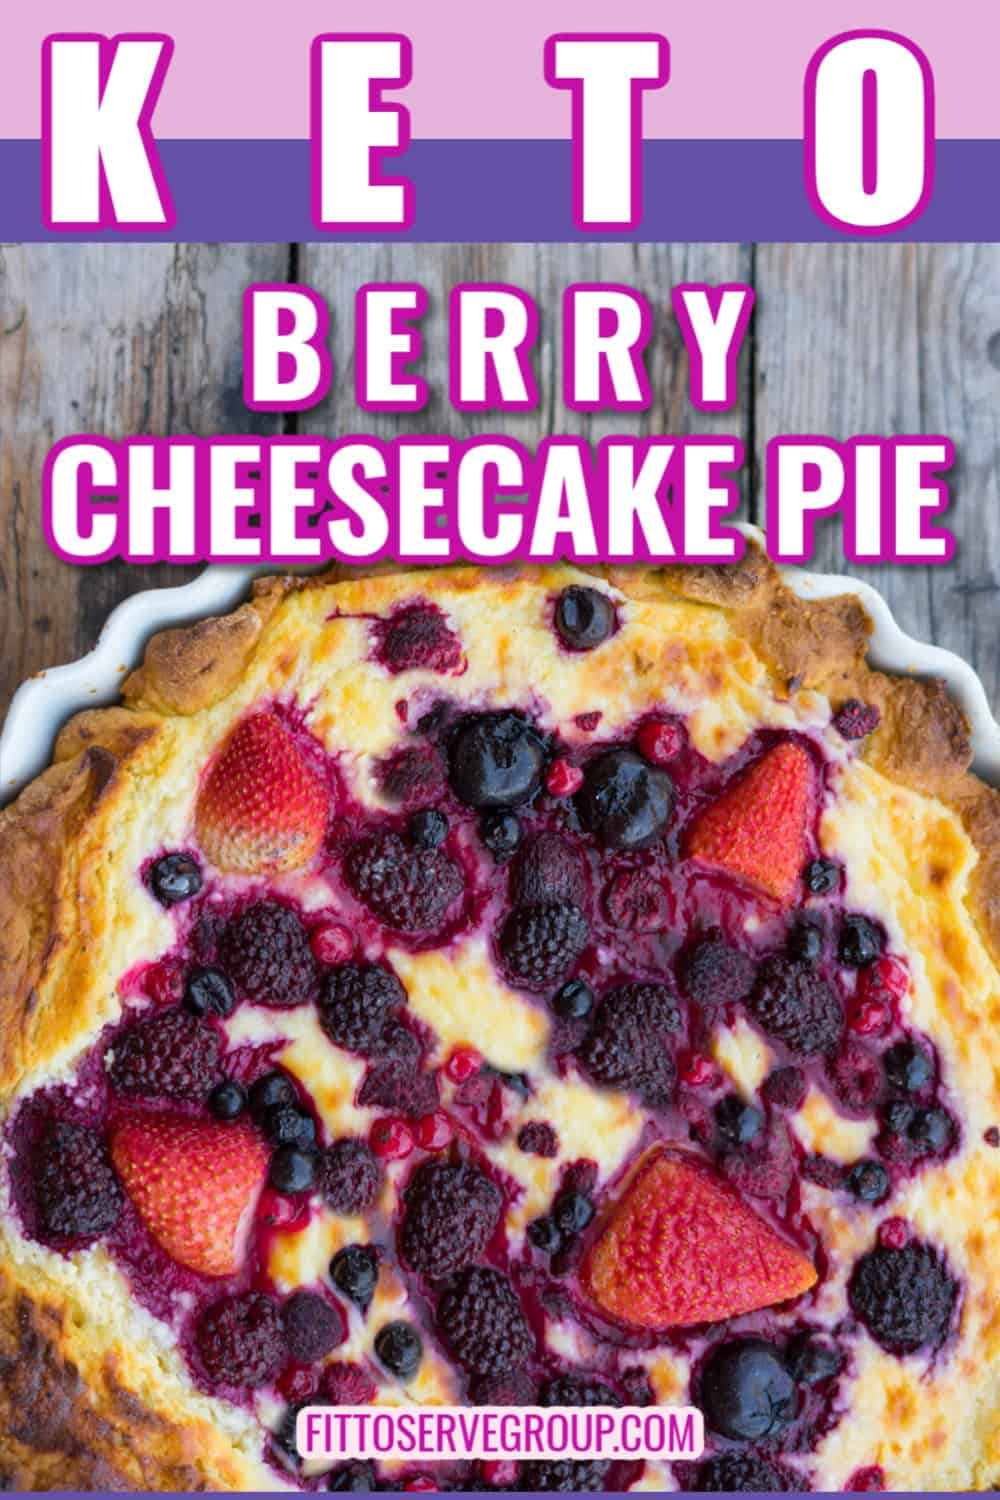 low carb berry cheesecake pie a low carb cheesecake featuring three types of berries baked in a pie dish